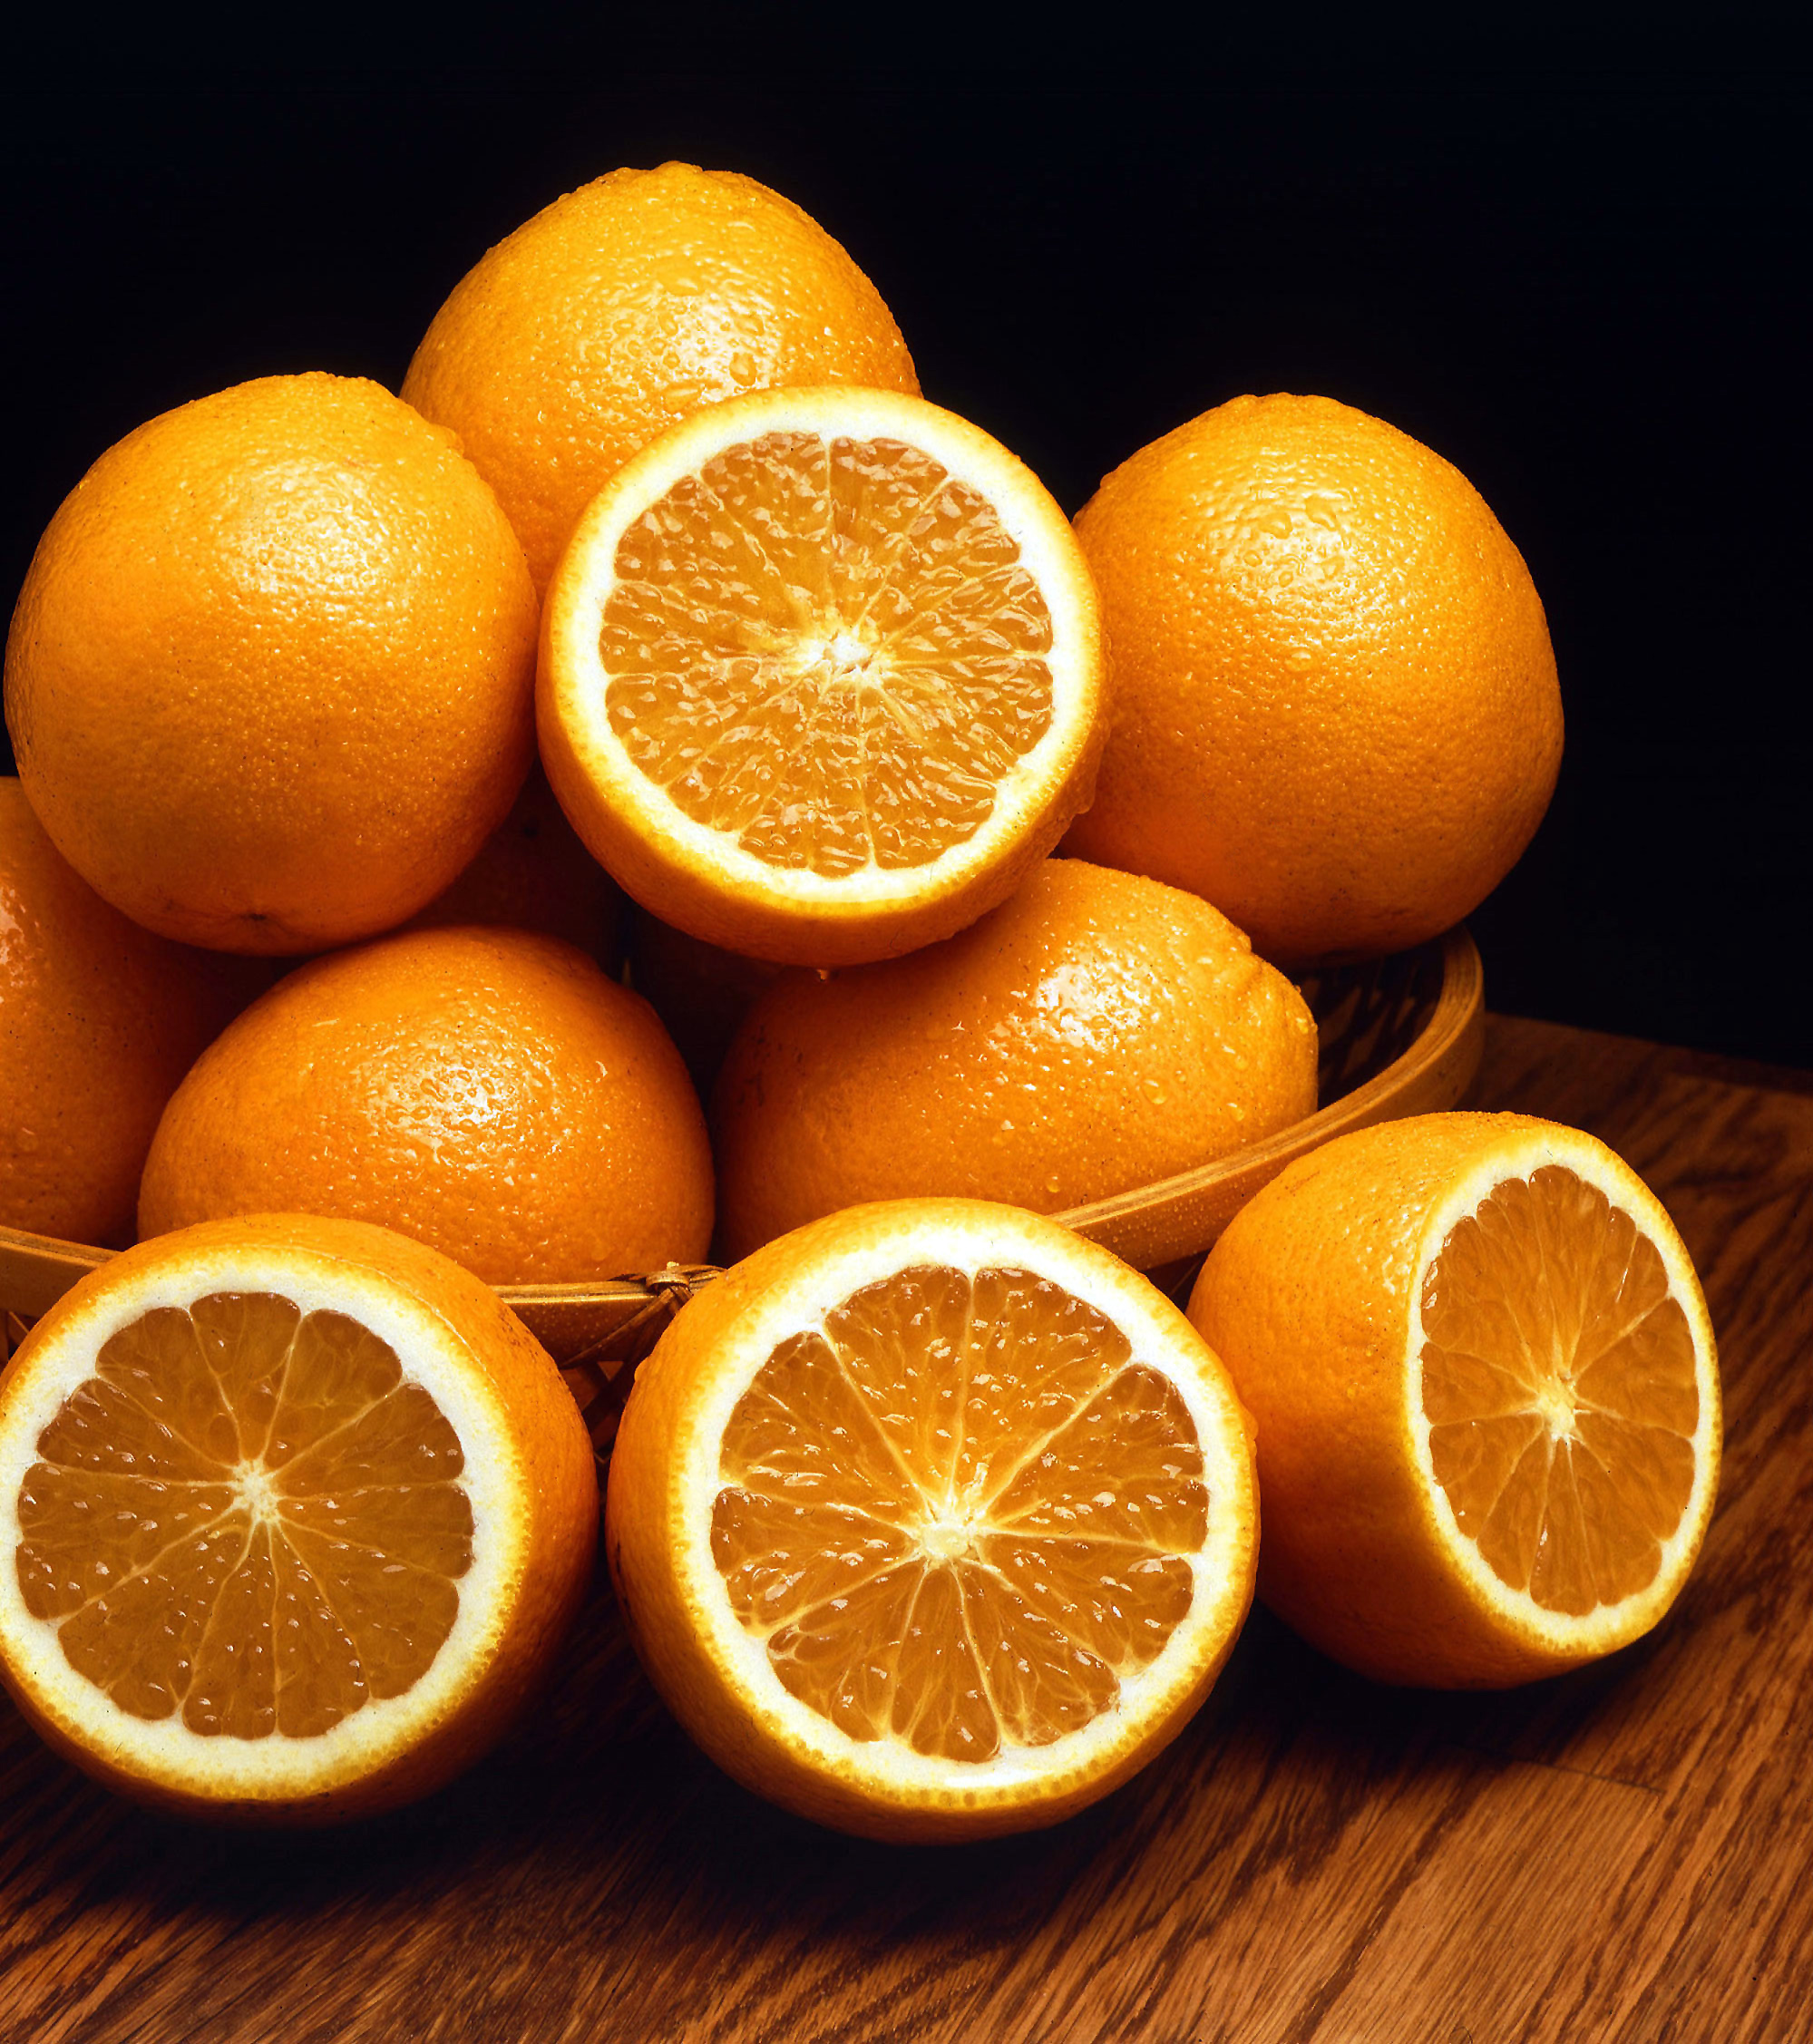 The colour orange derives its name from the orange fruit.